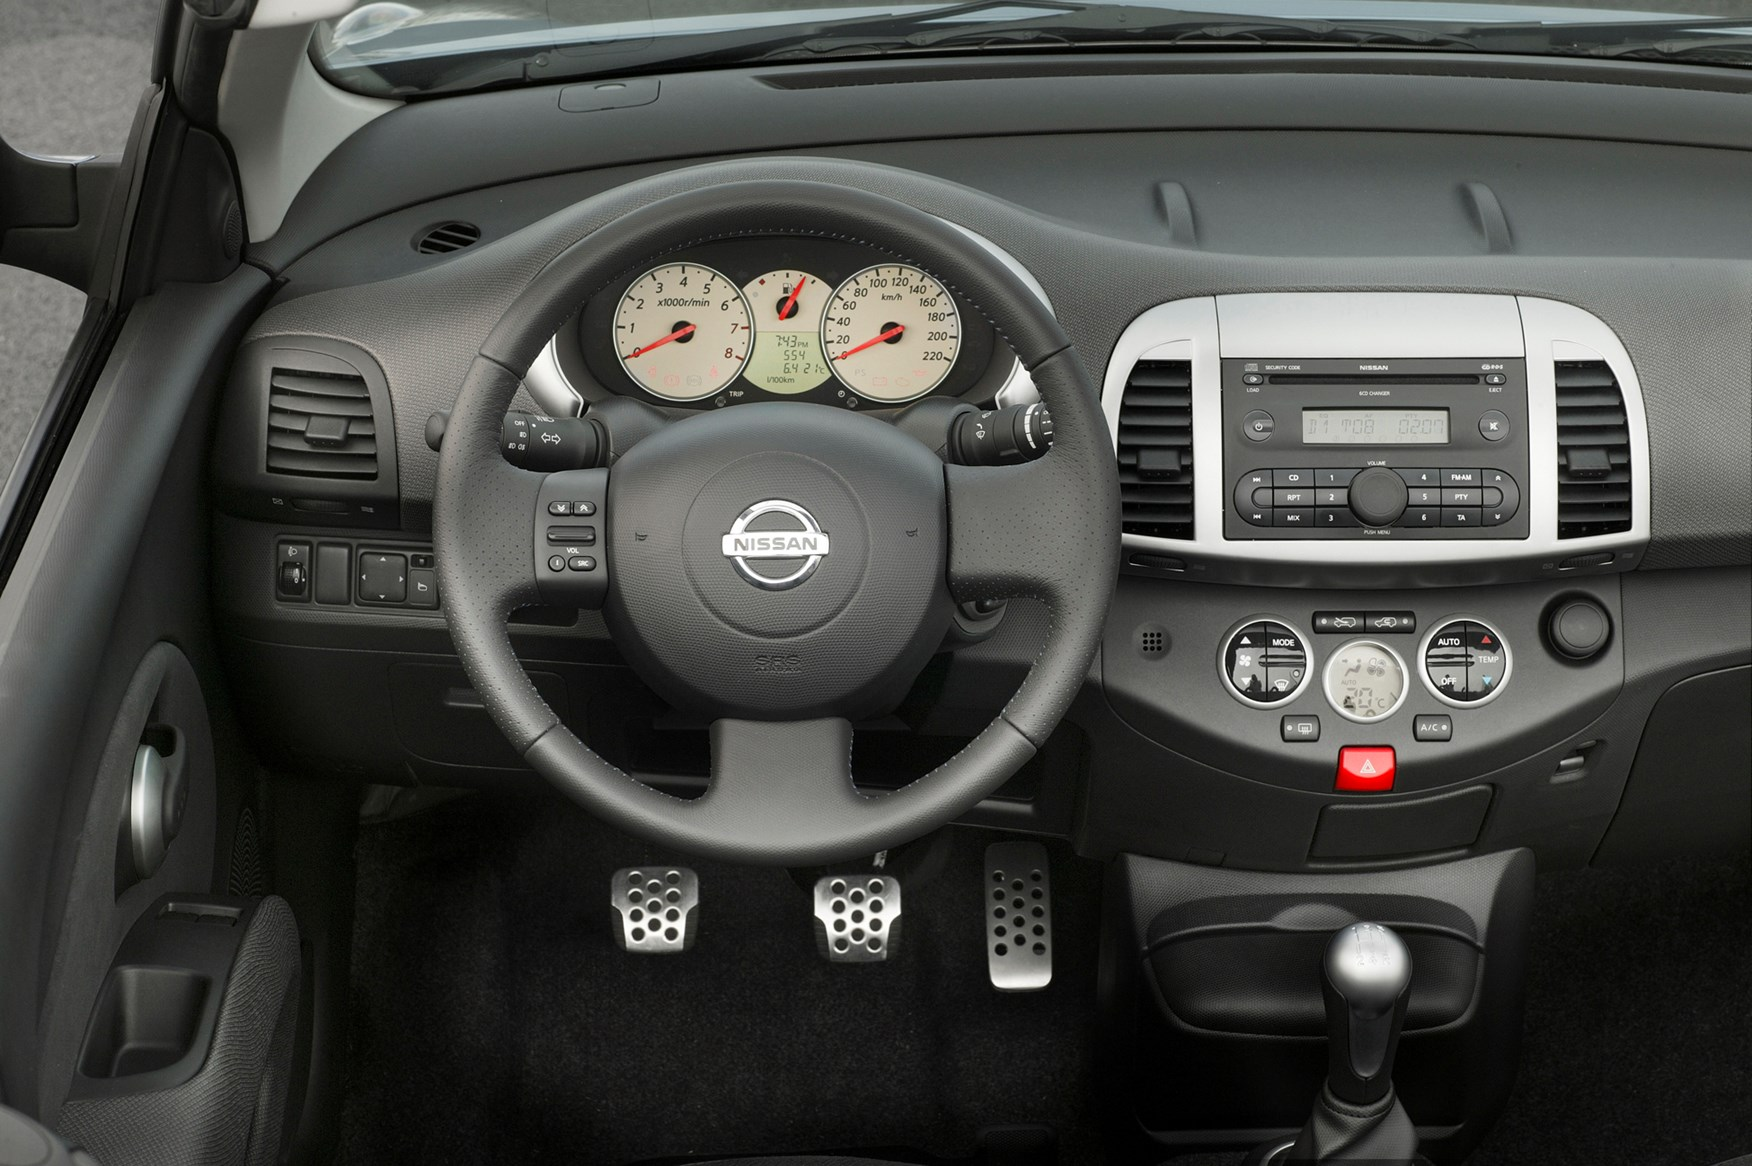 Nissan Micra C+C (2005 - 2009) Driving & Performance | Parkers